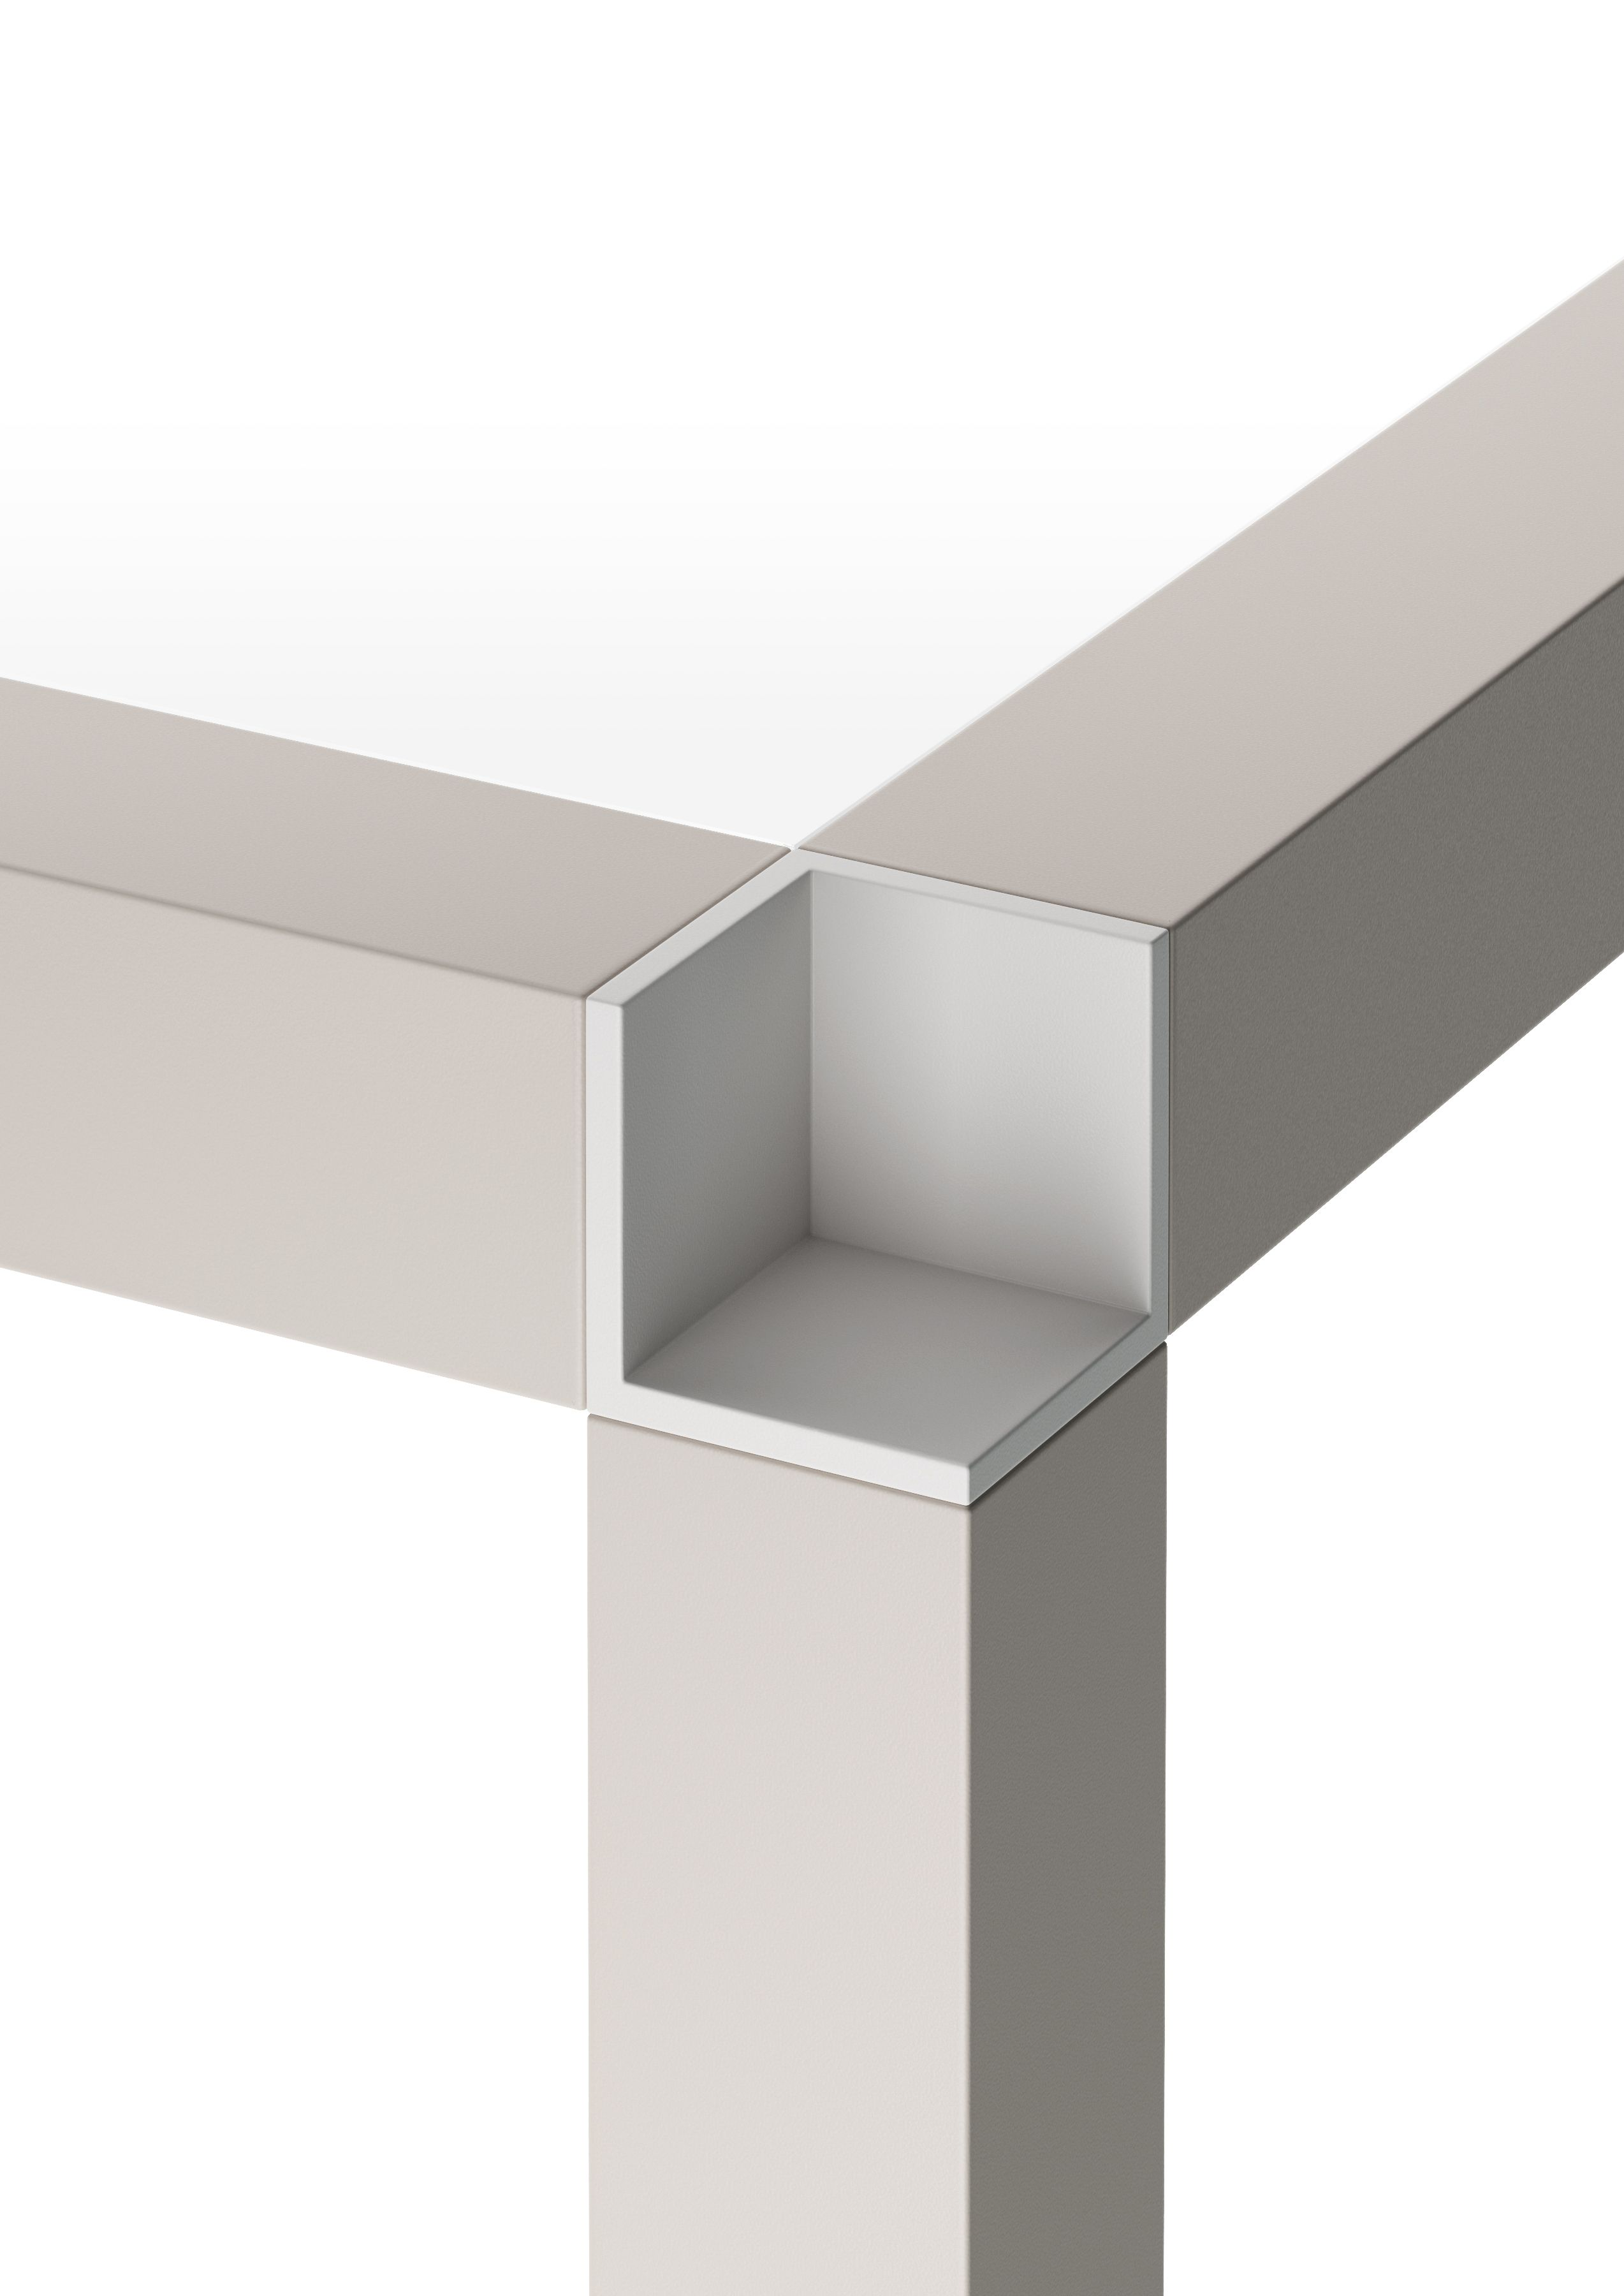 Meuble Aluminium Design Square Glass And Aluminium Table Tavolo Zero 140 X 140 Tavolo Zero